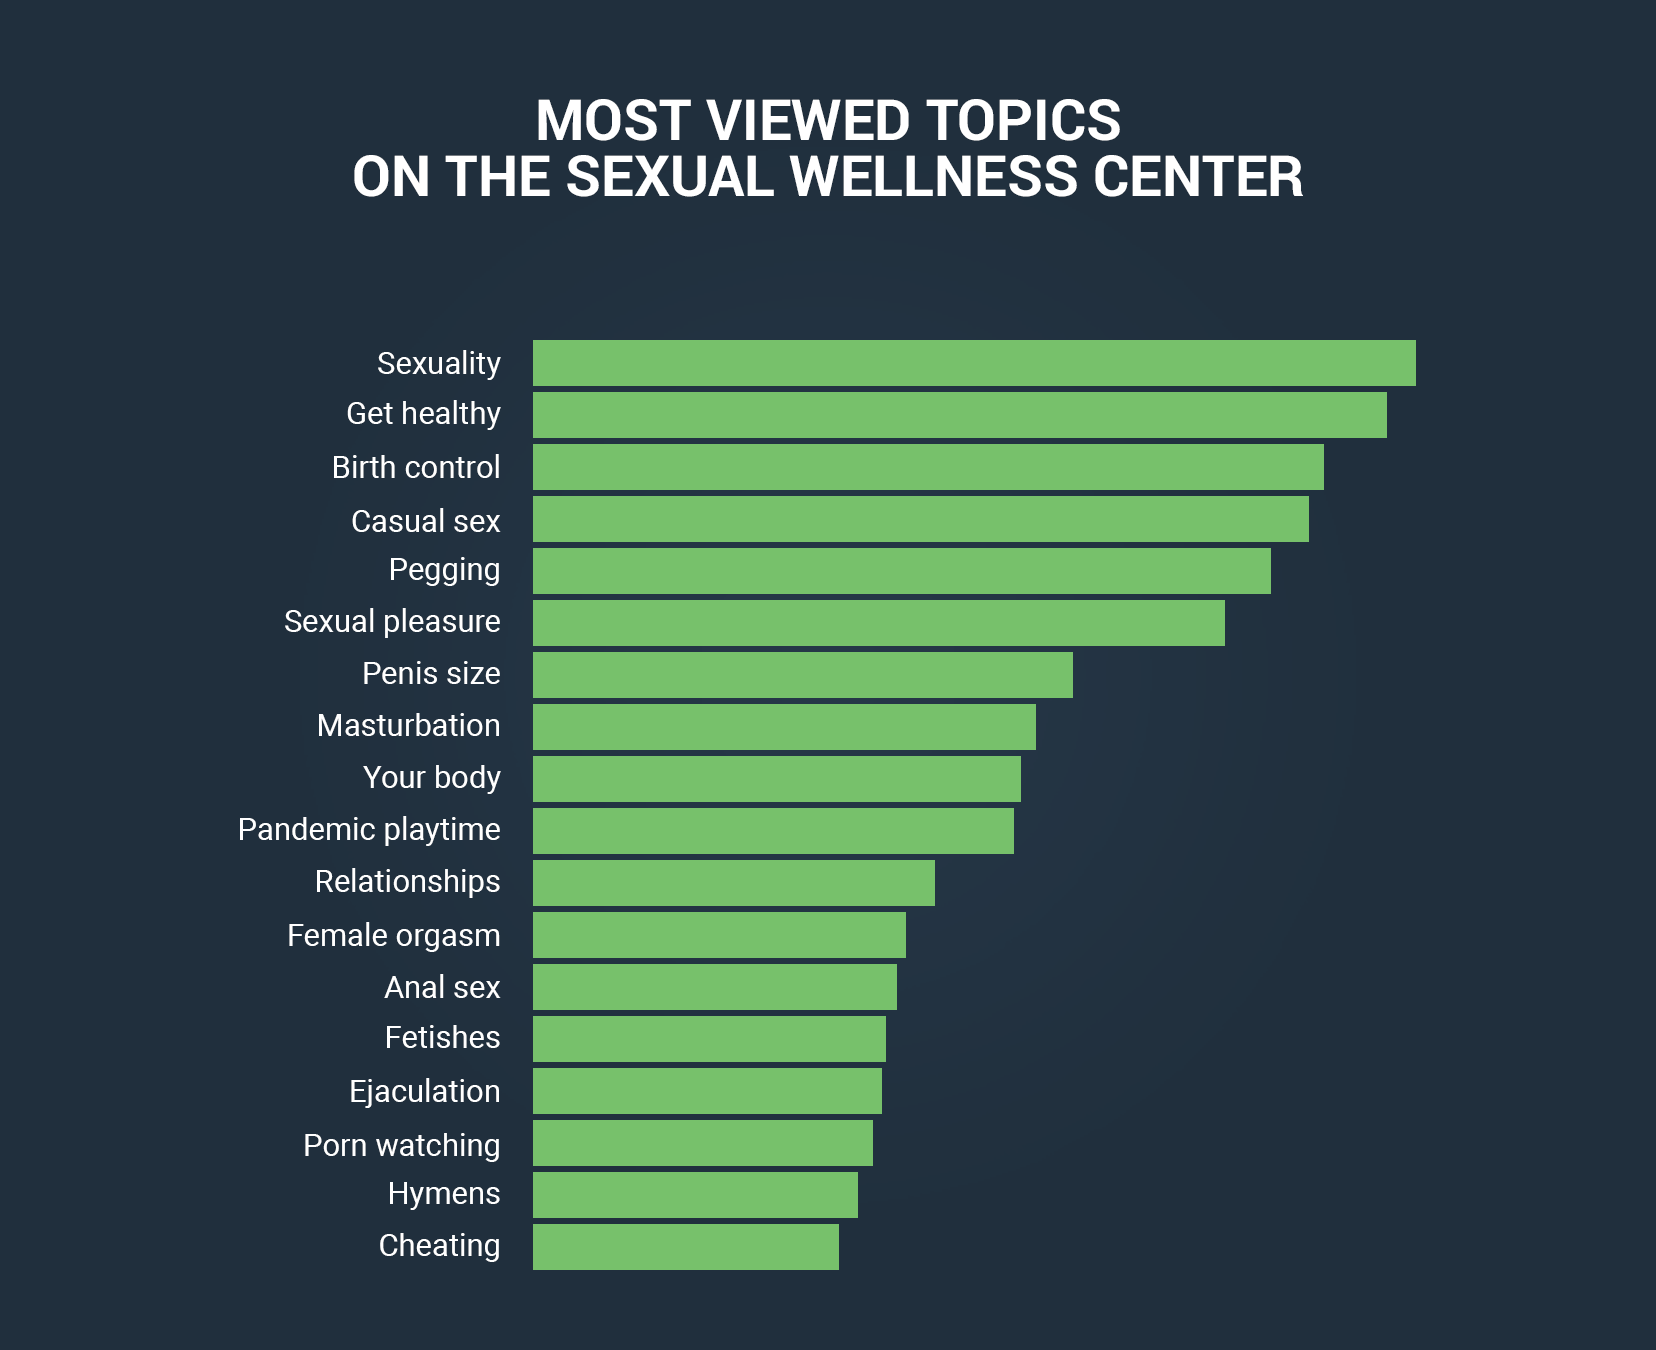 Most viewed topis on the sexual welness center